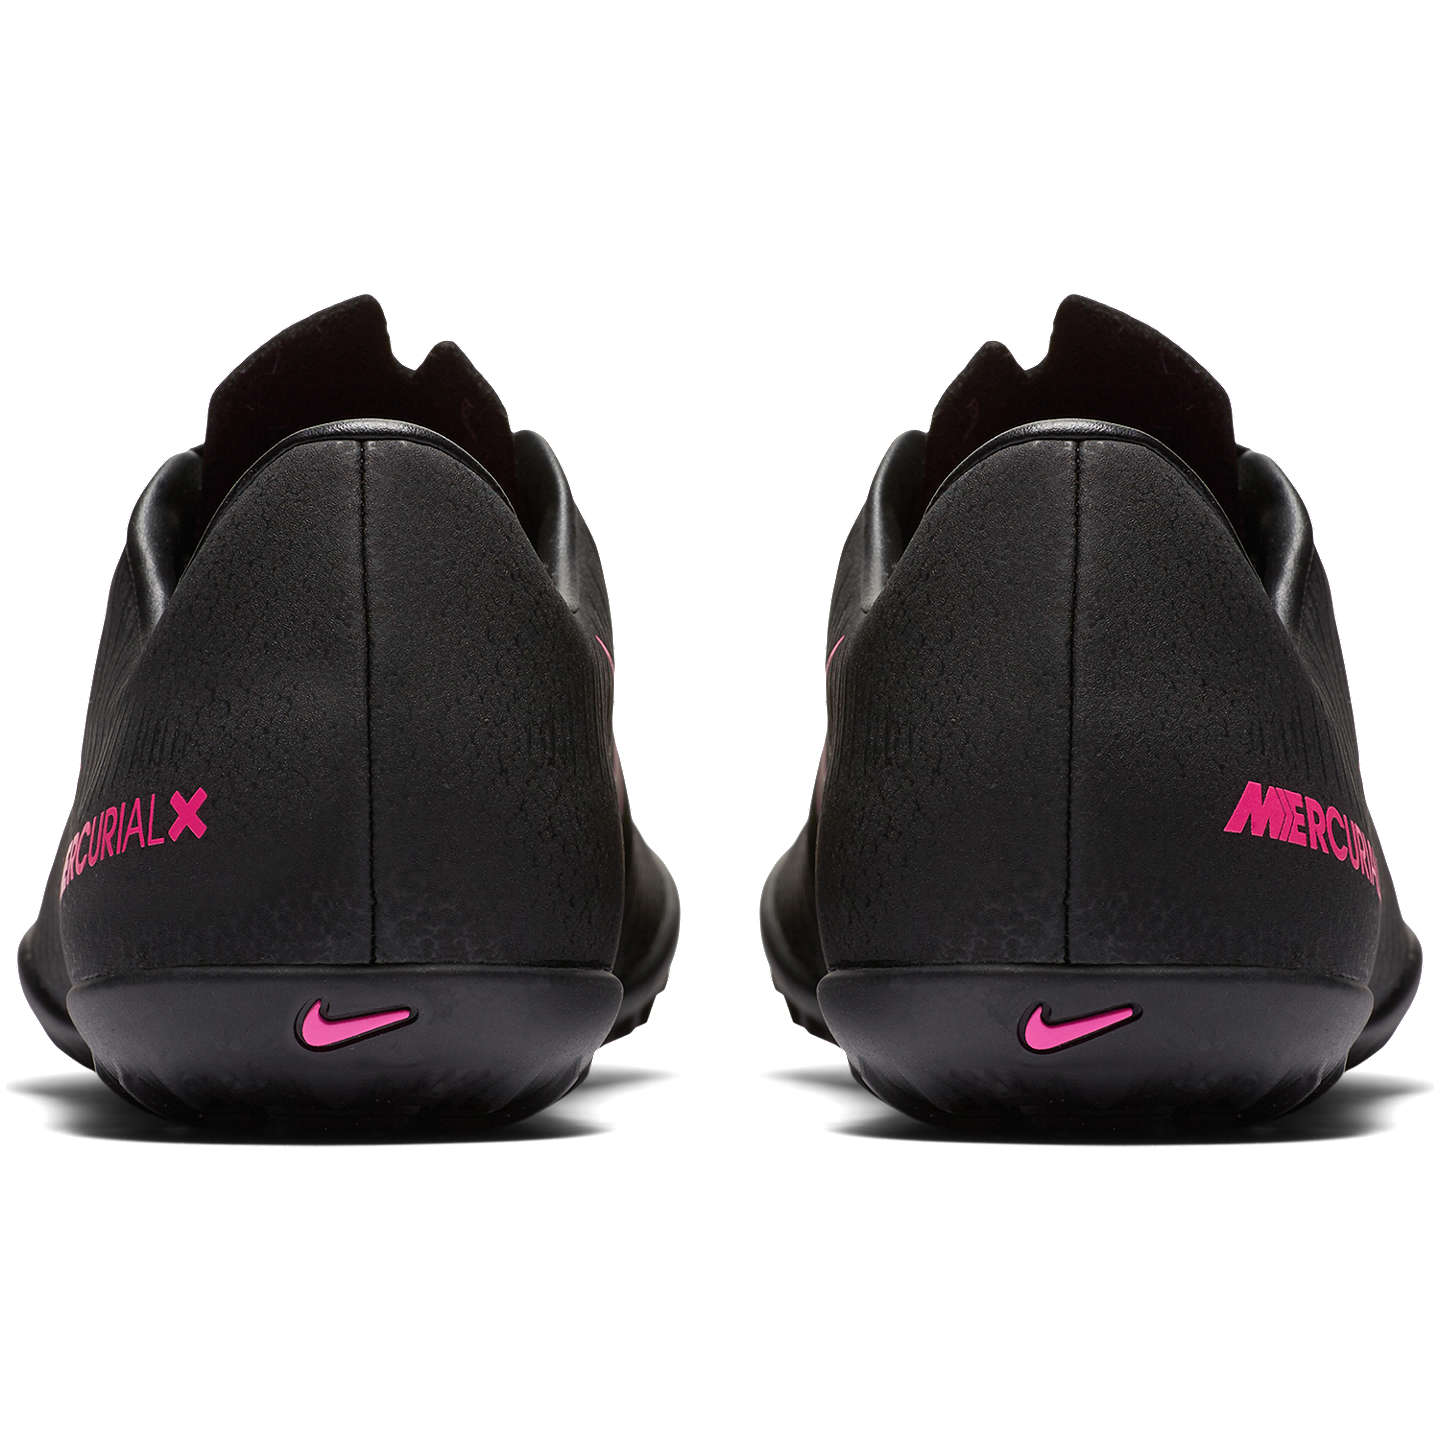 Buynike Childrens Laced Mercurial Sports Shoes, Blackpink, 11 Jnr Online